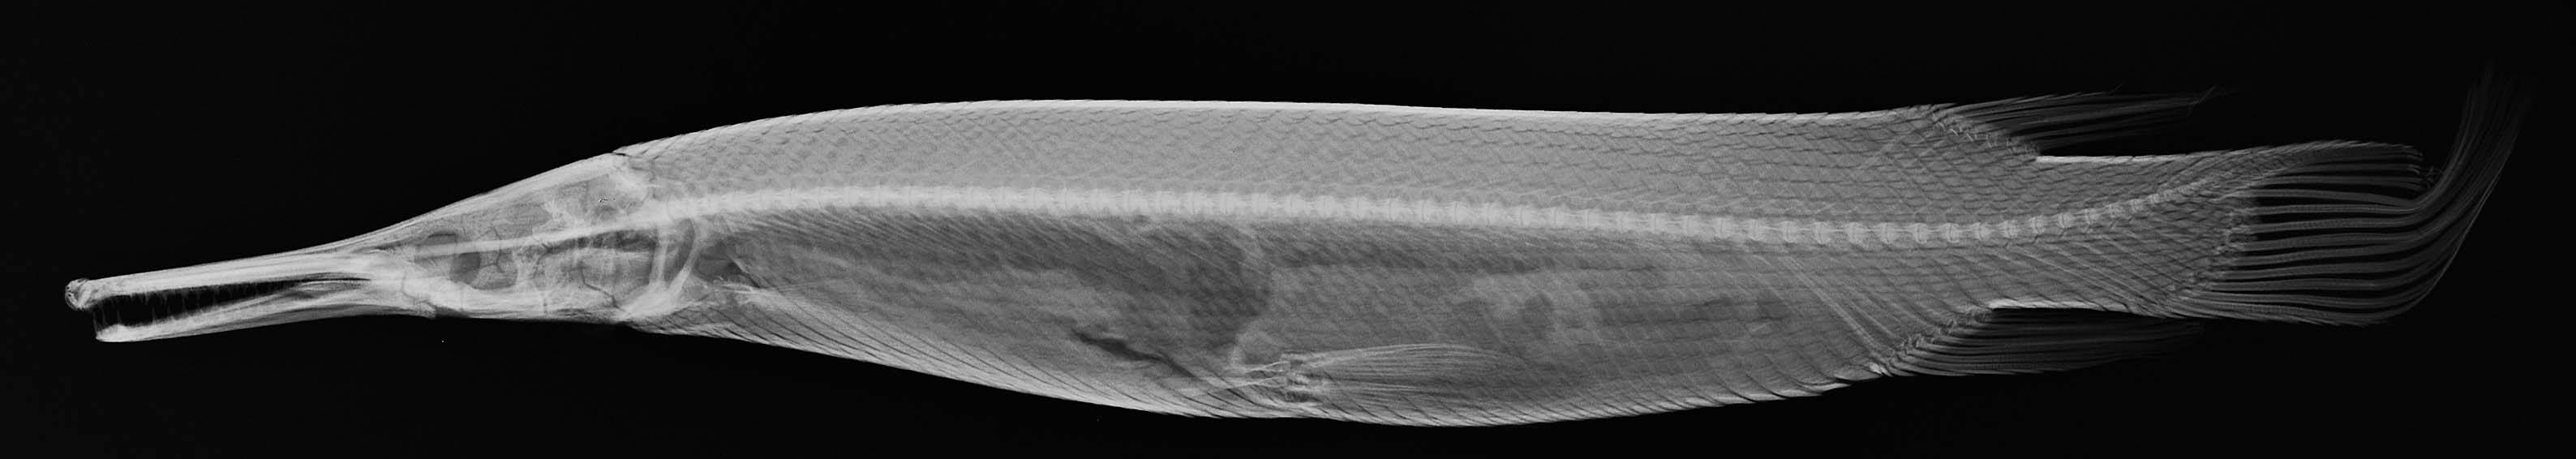 Image of tropical gar